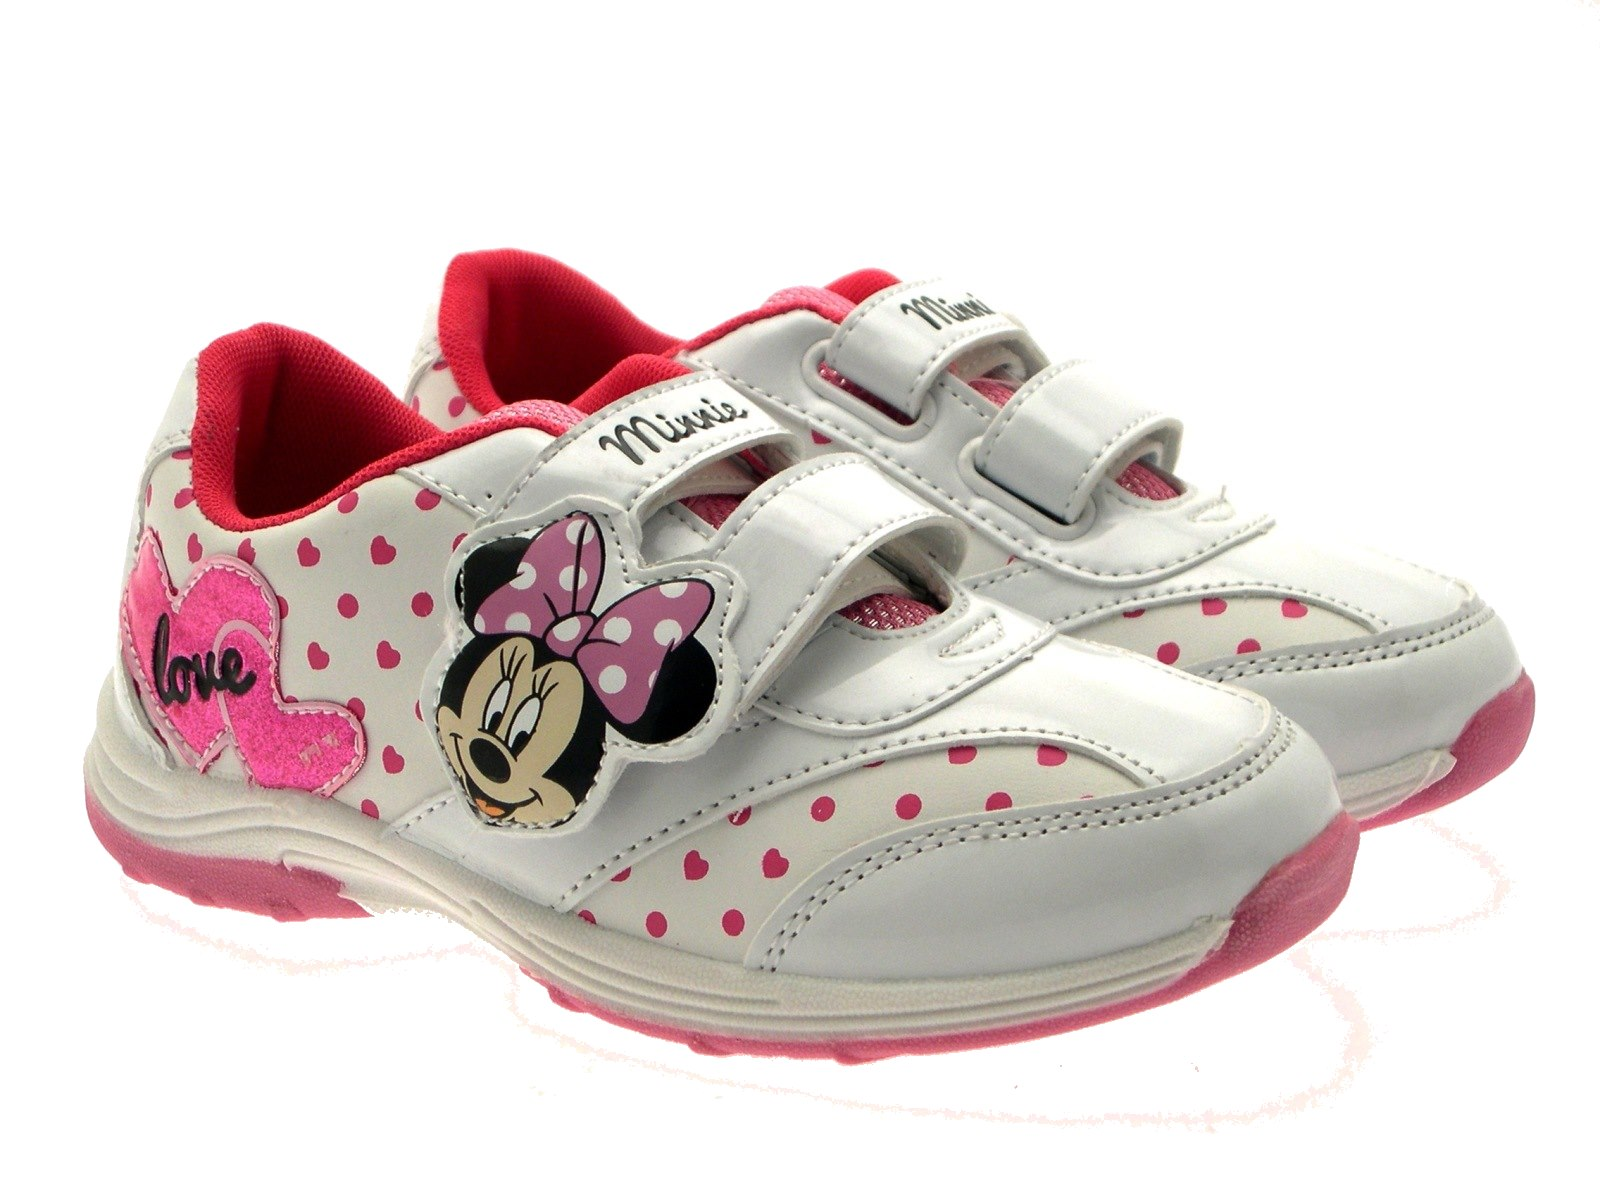 4890f729c4a Girls Disney Minnie Mouse Trainers Flat Pumps Childrens Shoes Size ...